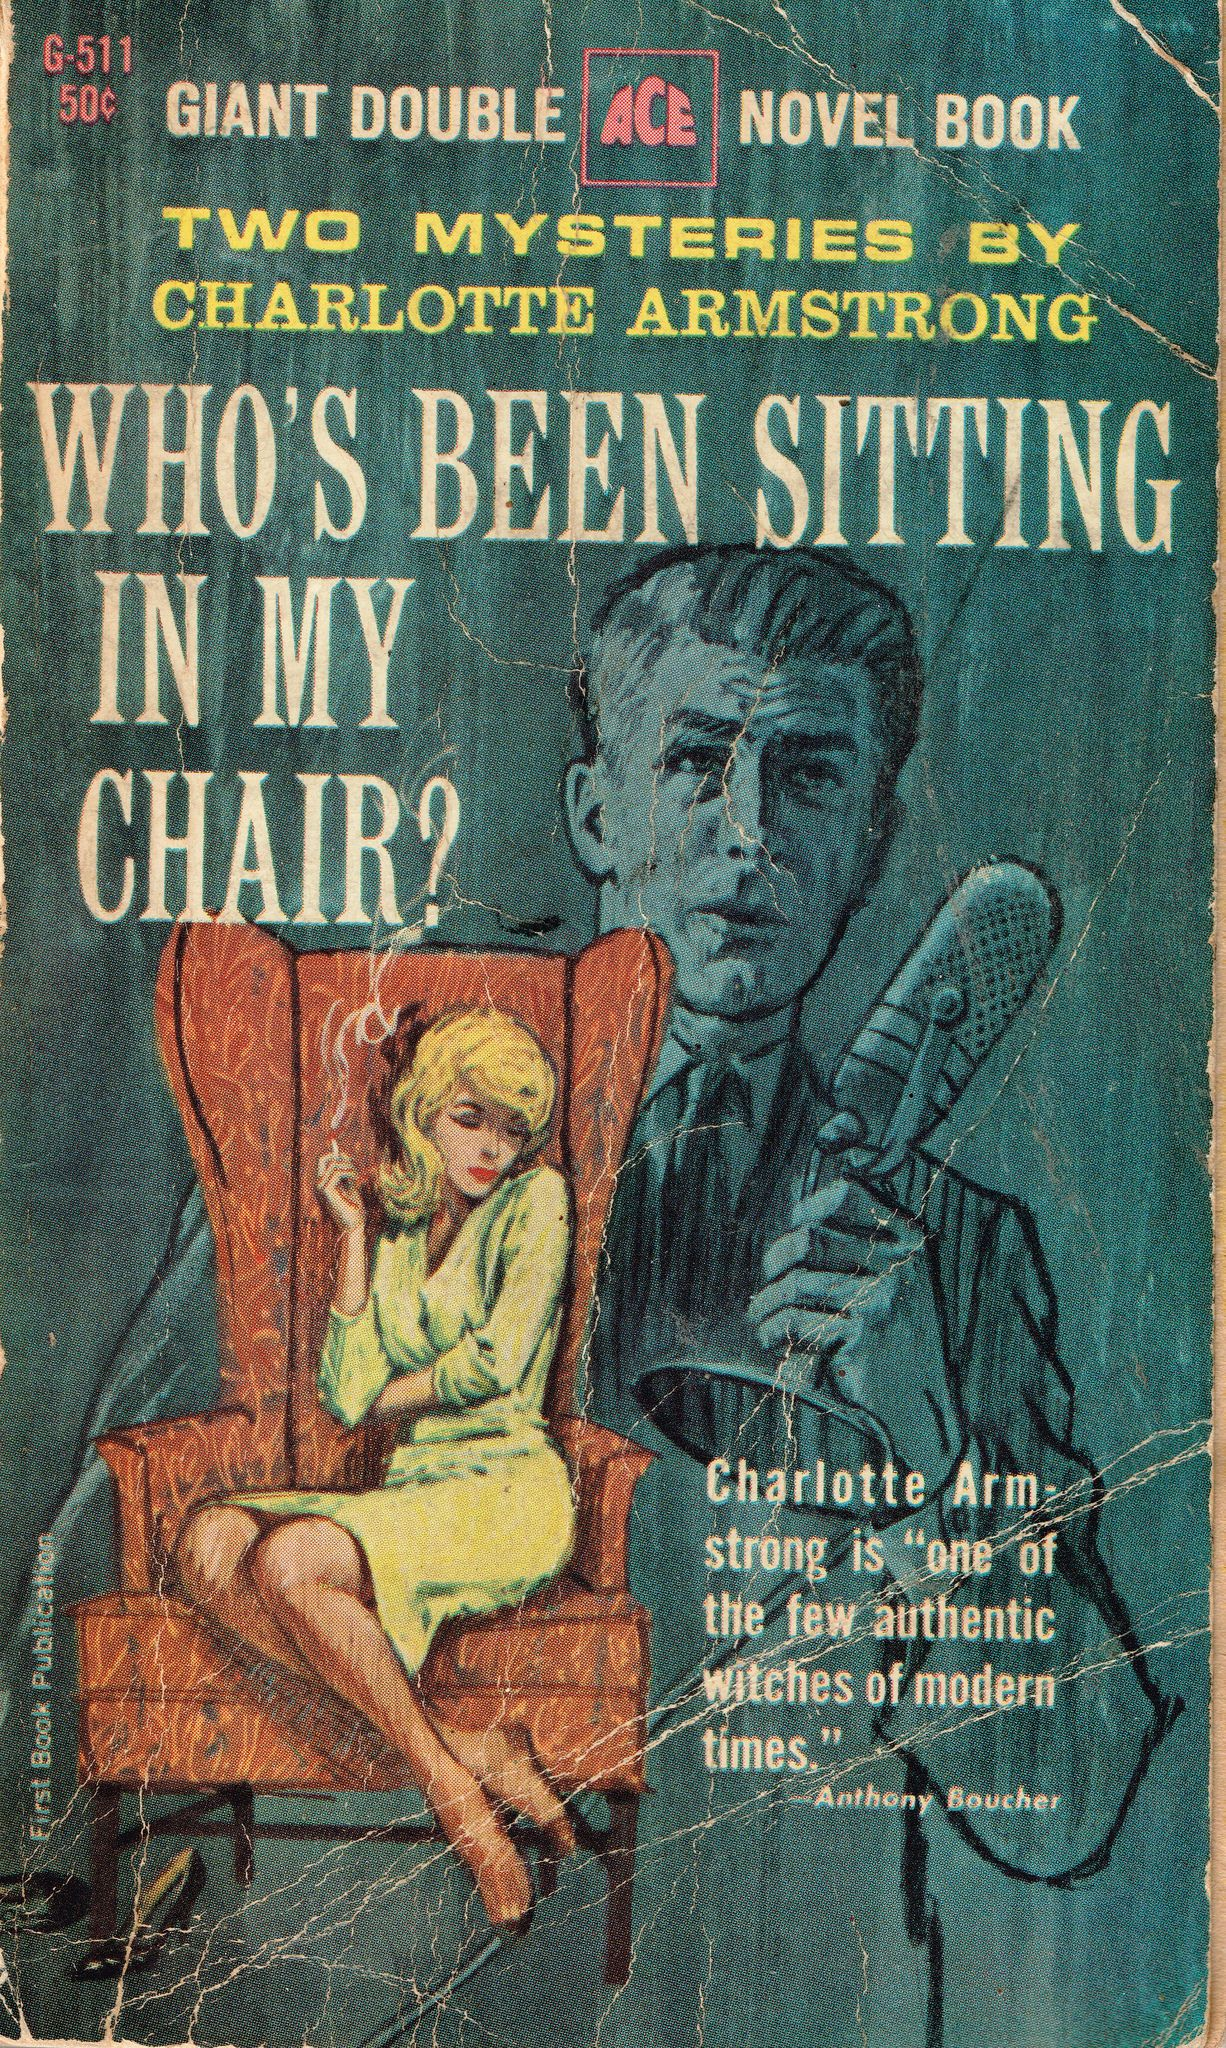 Whos been sitting in my chair pulp art pinterest novels httpsflicpvw6u8h whos been sitting in my chair ace double novel g 511 1963 charlotte armstrong cover artist unknown i cant find a credit altavistaventures Image collections